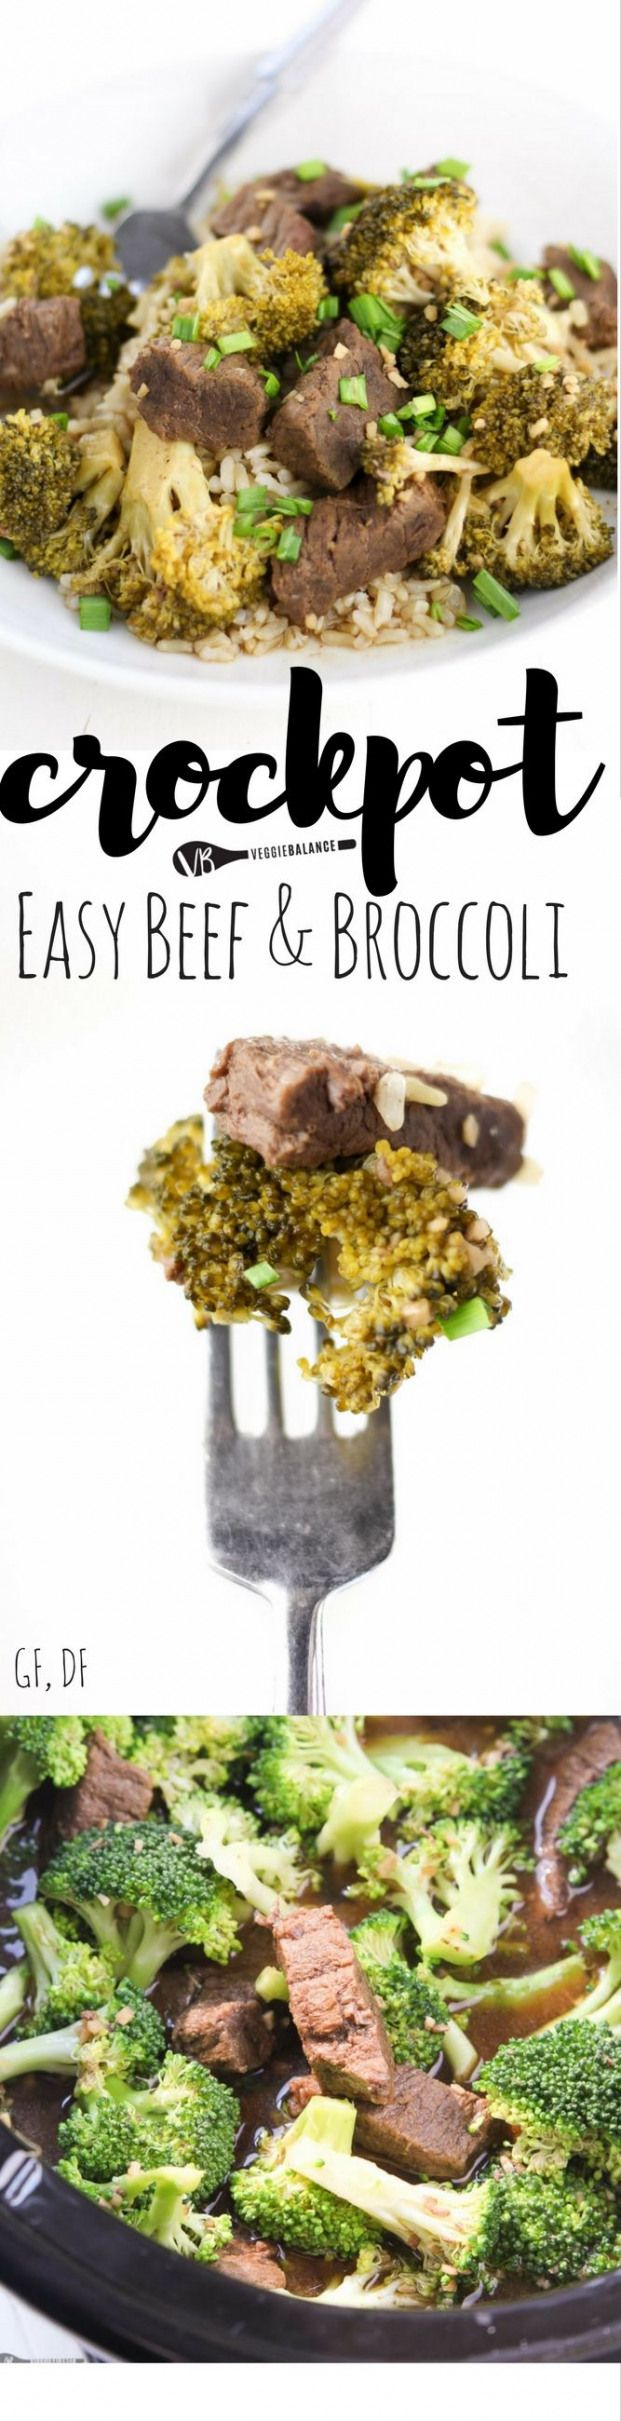 Crockpot Beef and Broccoli recipe made simple easy and gluten-free! 8 easy ingredients zero fuss and in no time you'll have dinner on the table. {Gluten-Free Dairy-Free} #paleolunch #beefandbroccoli